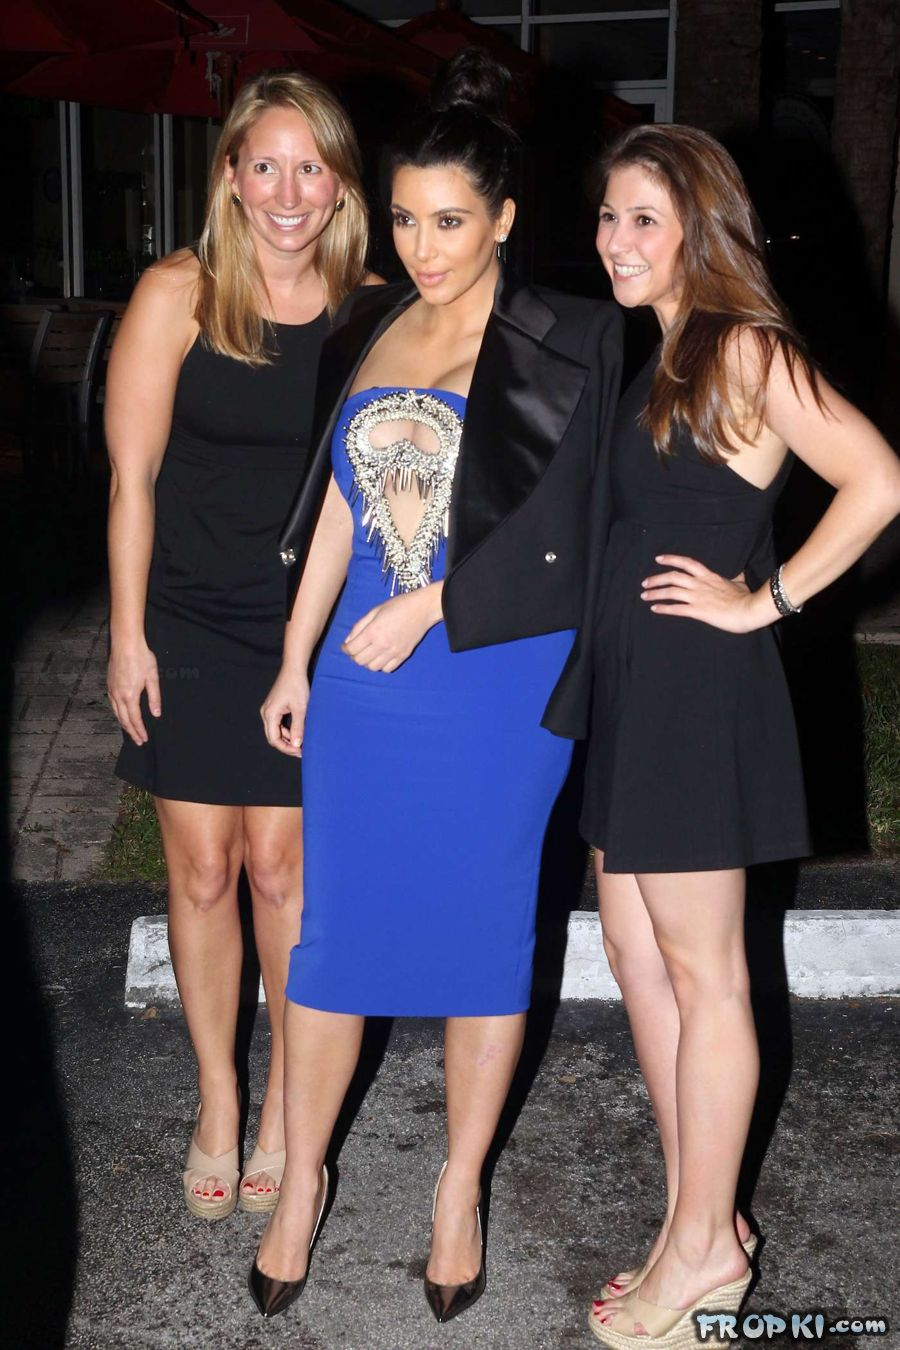 Pregnant Kim Kardashian steps out for dinner AcdxNXqc